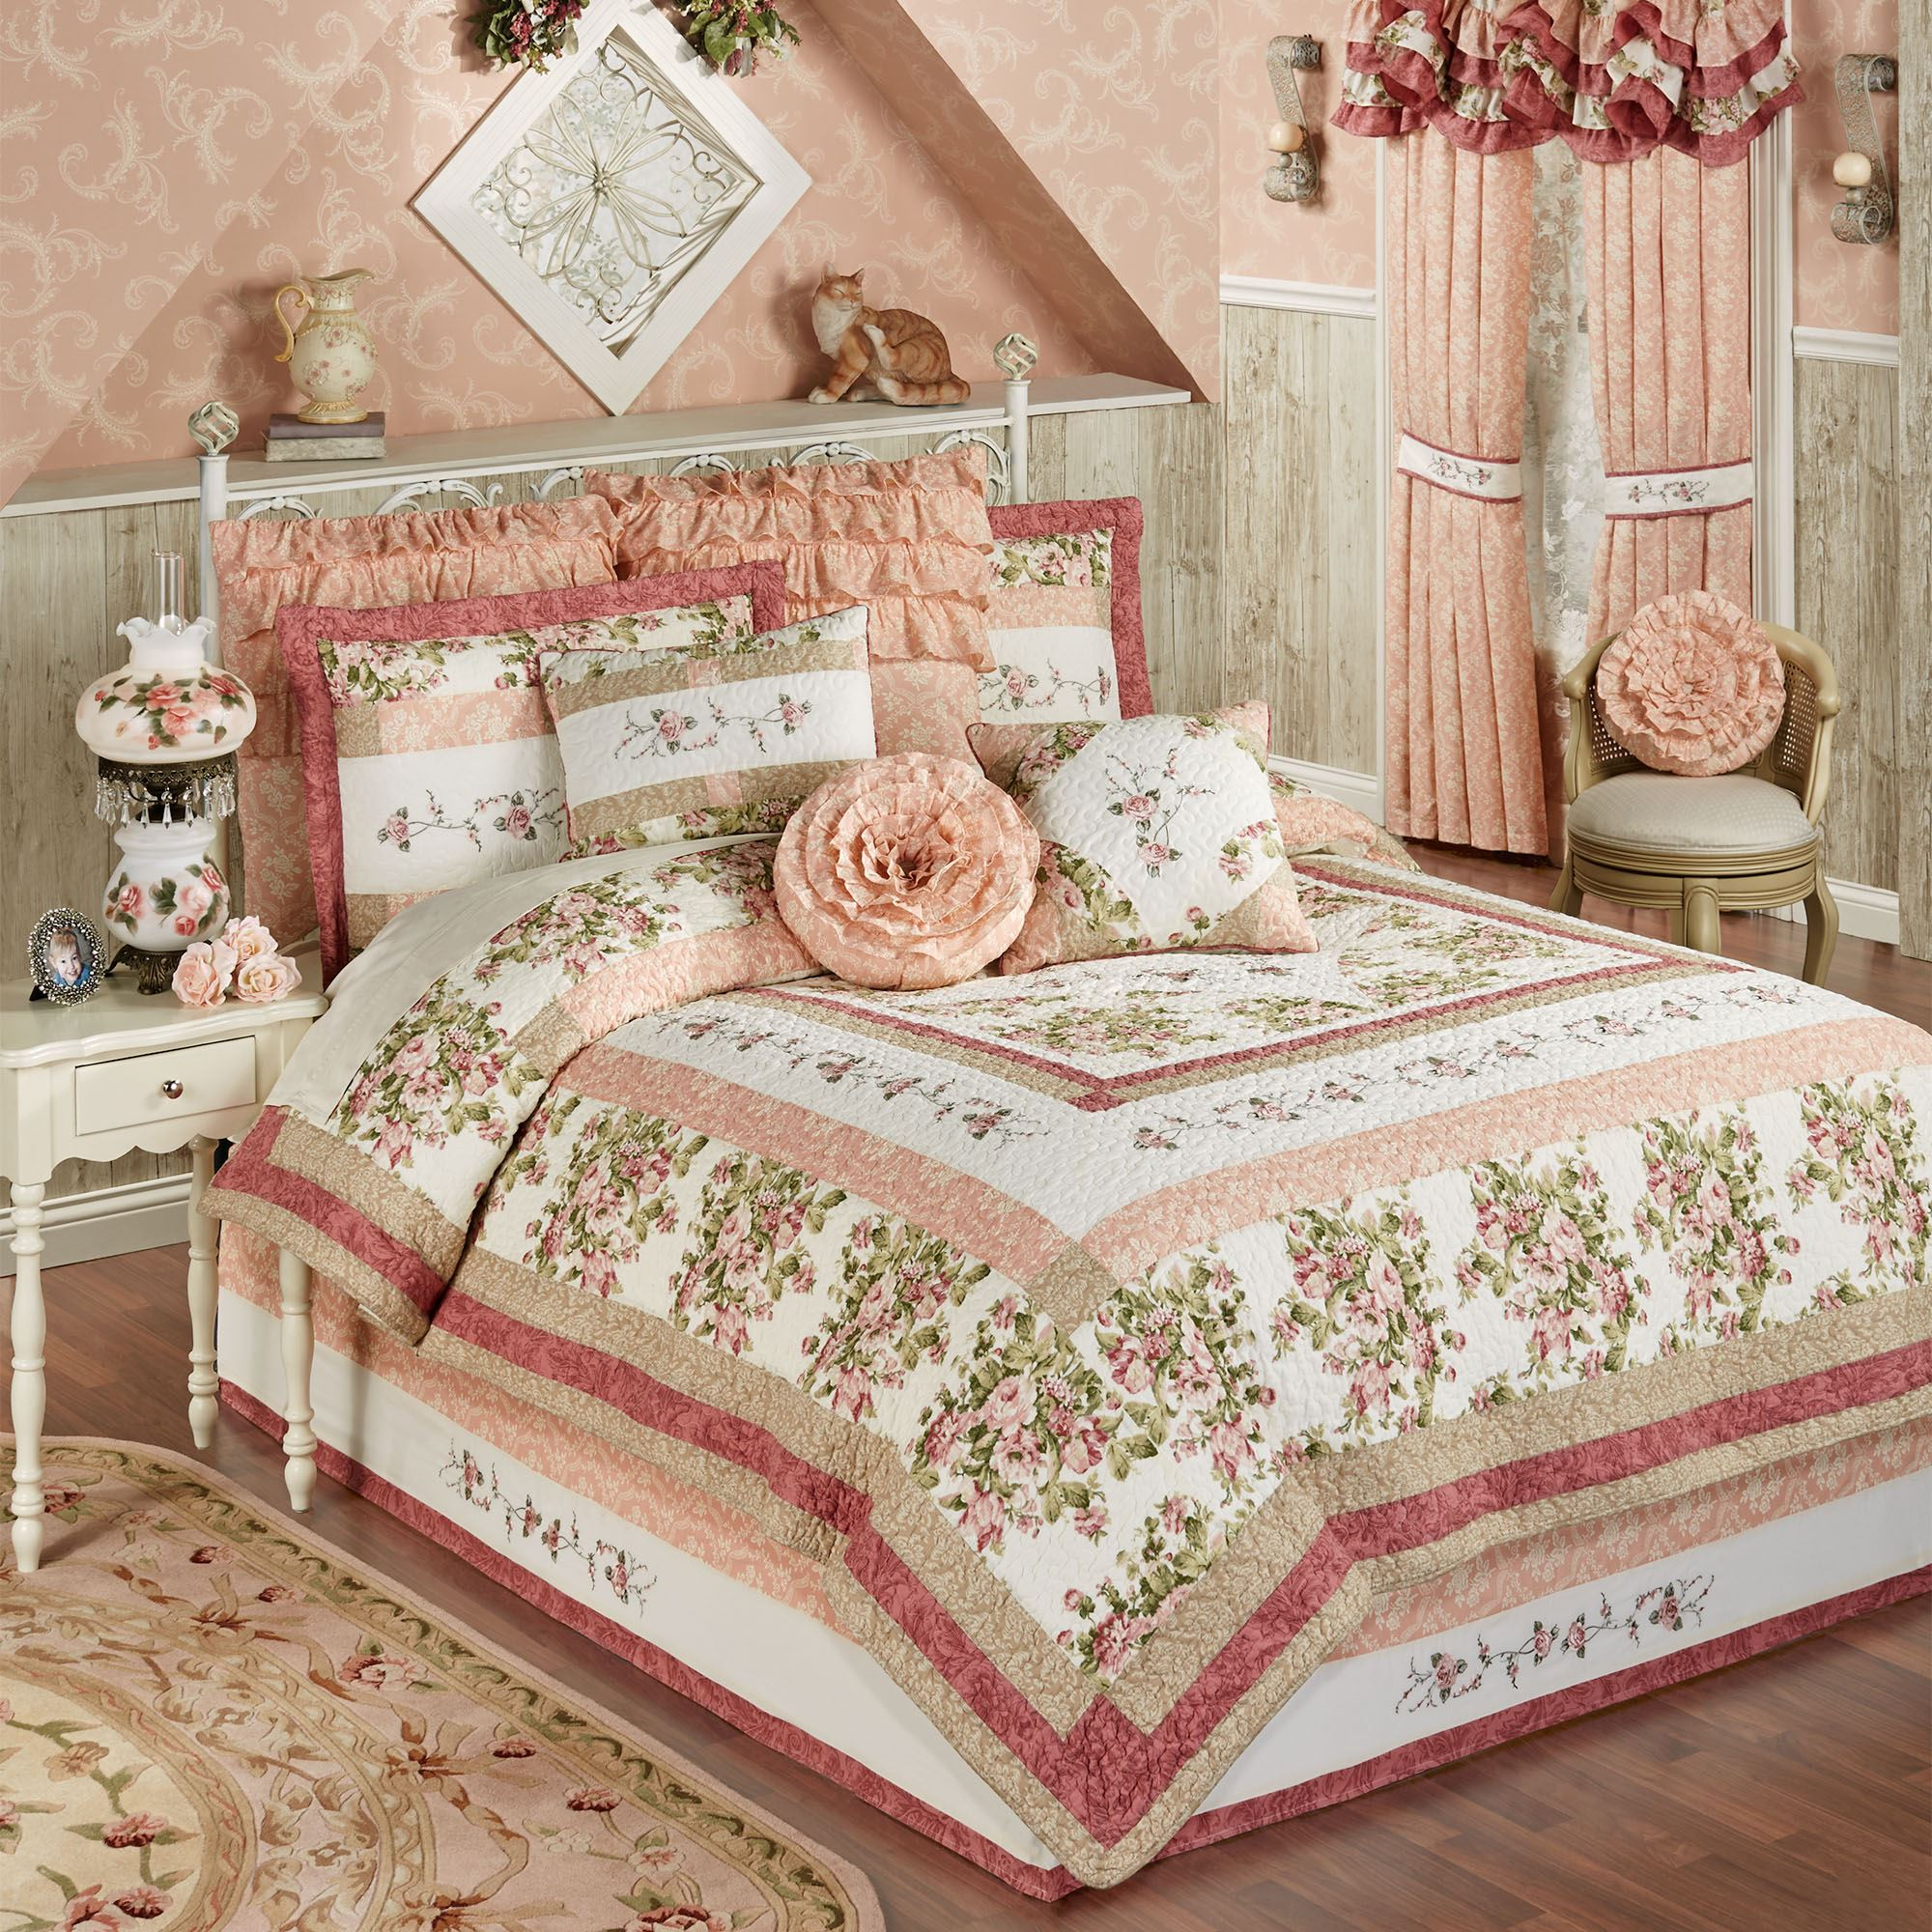 Daydream 4 Pc Floral Quilt Set